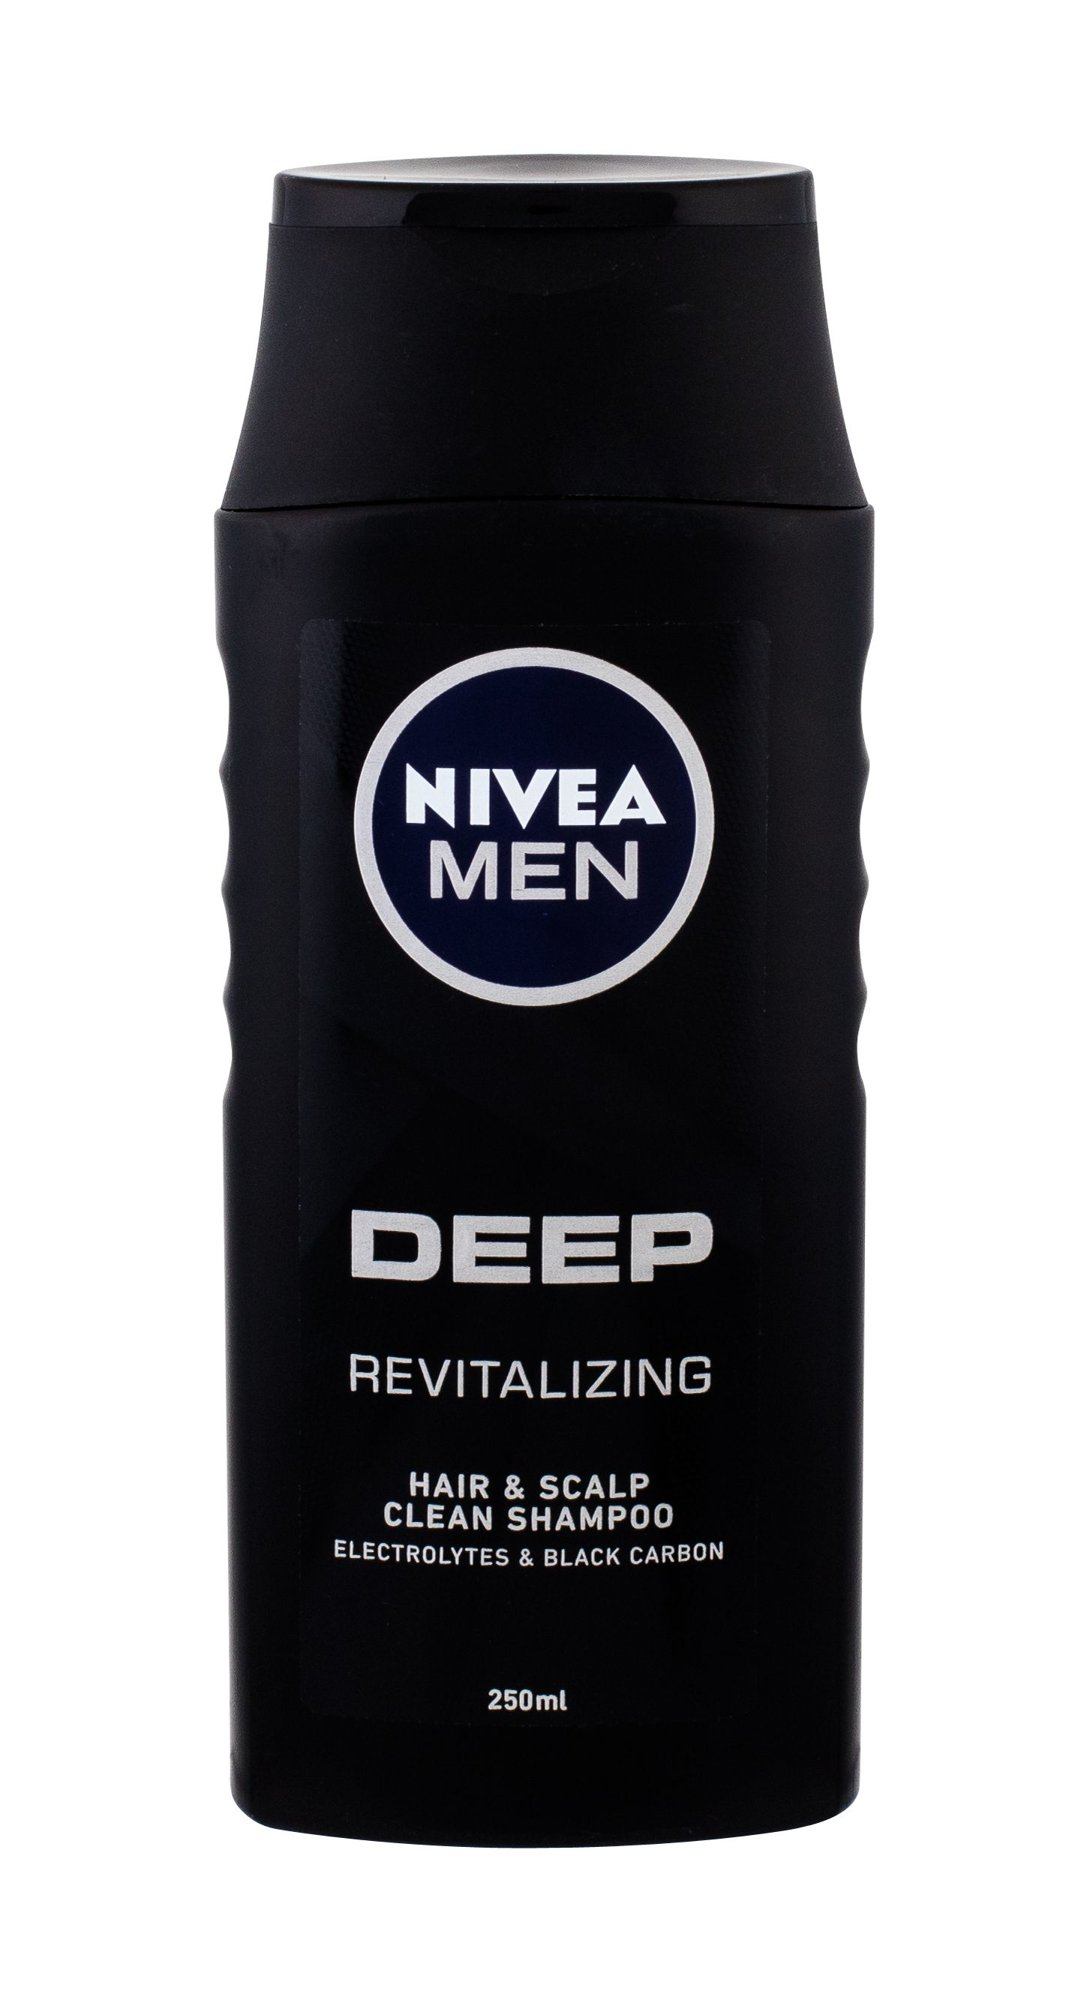 Nivea Men Deep Shampoo 250ml